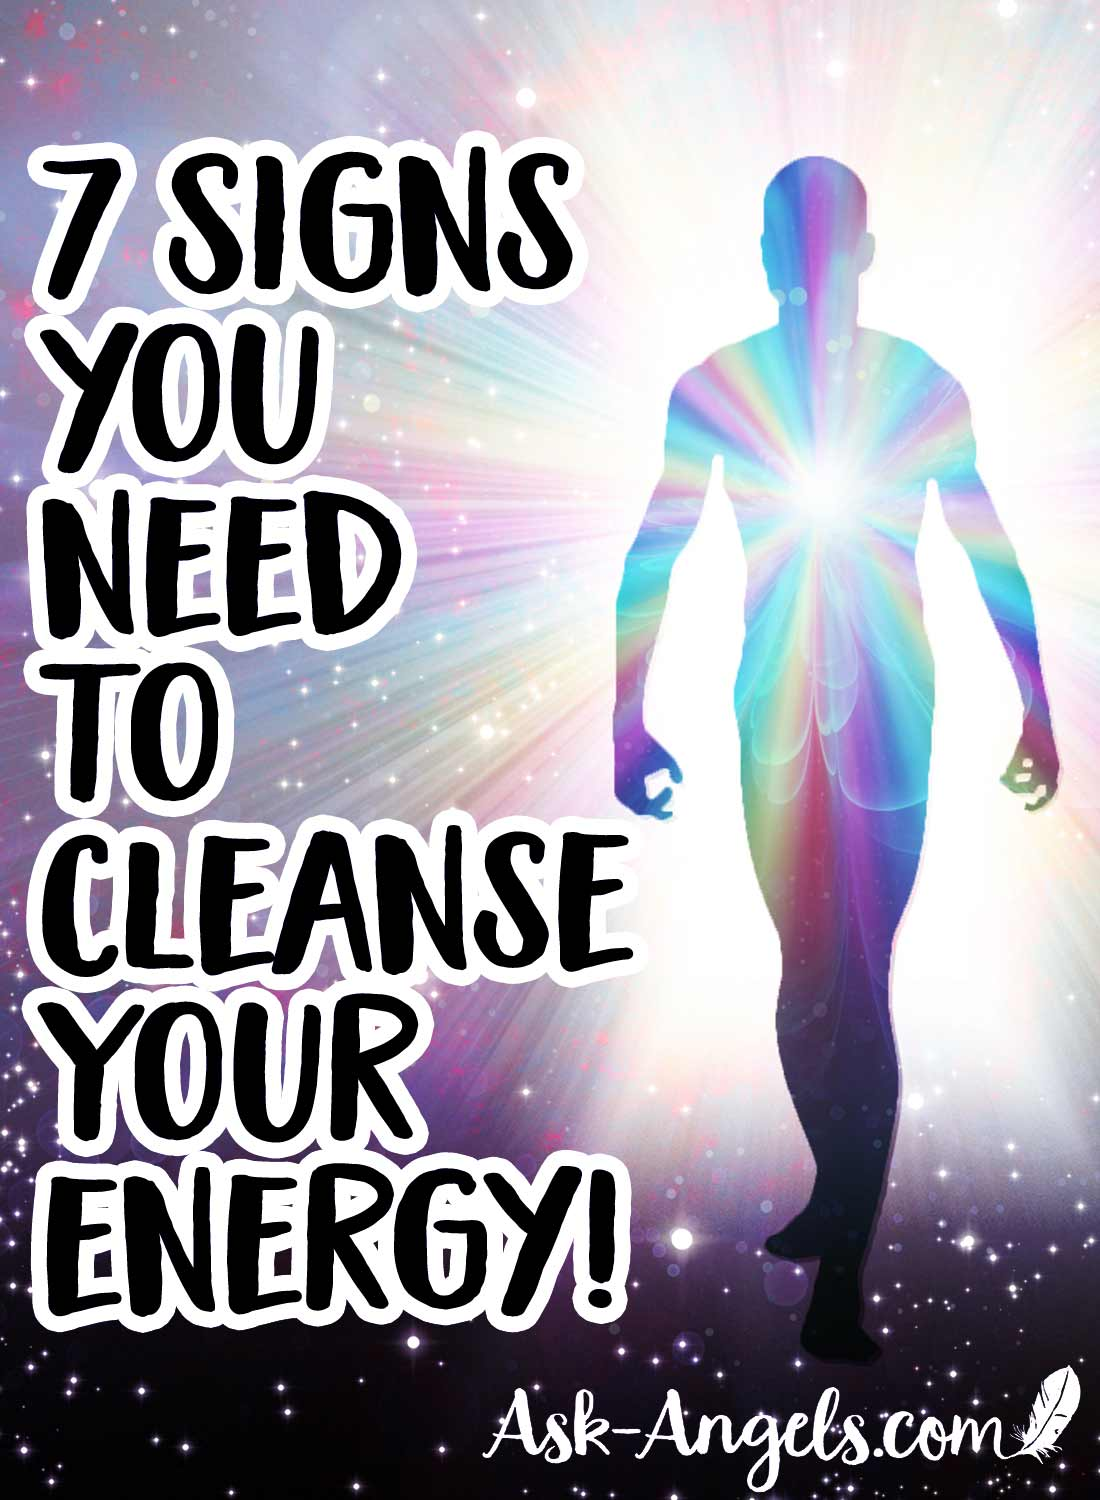 7 Signs You Need to Cleanse Your Energy